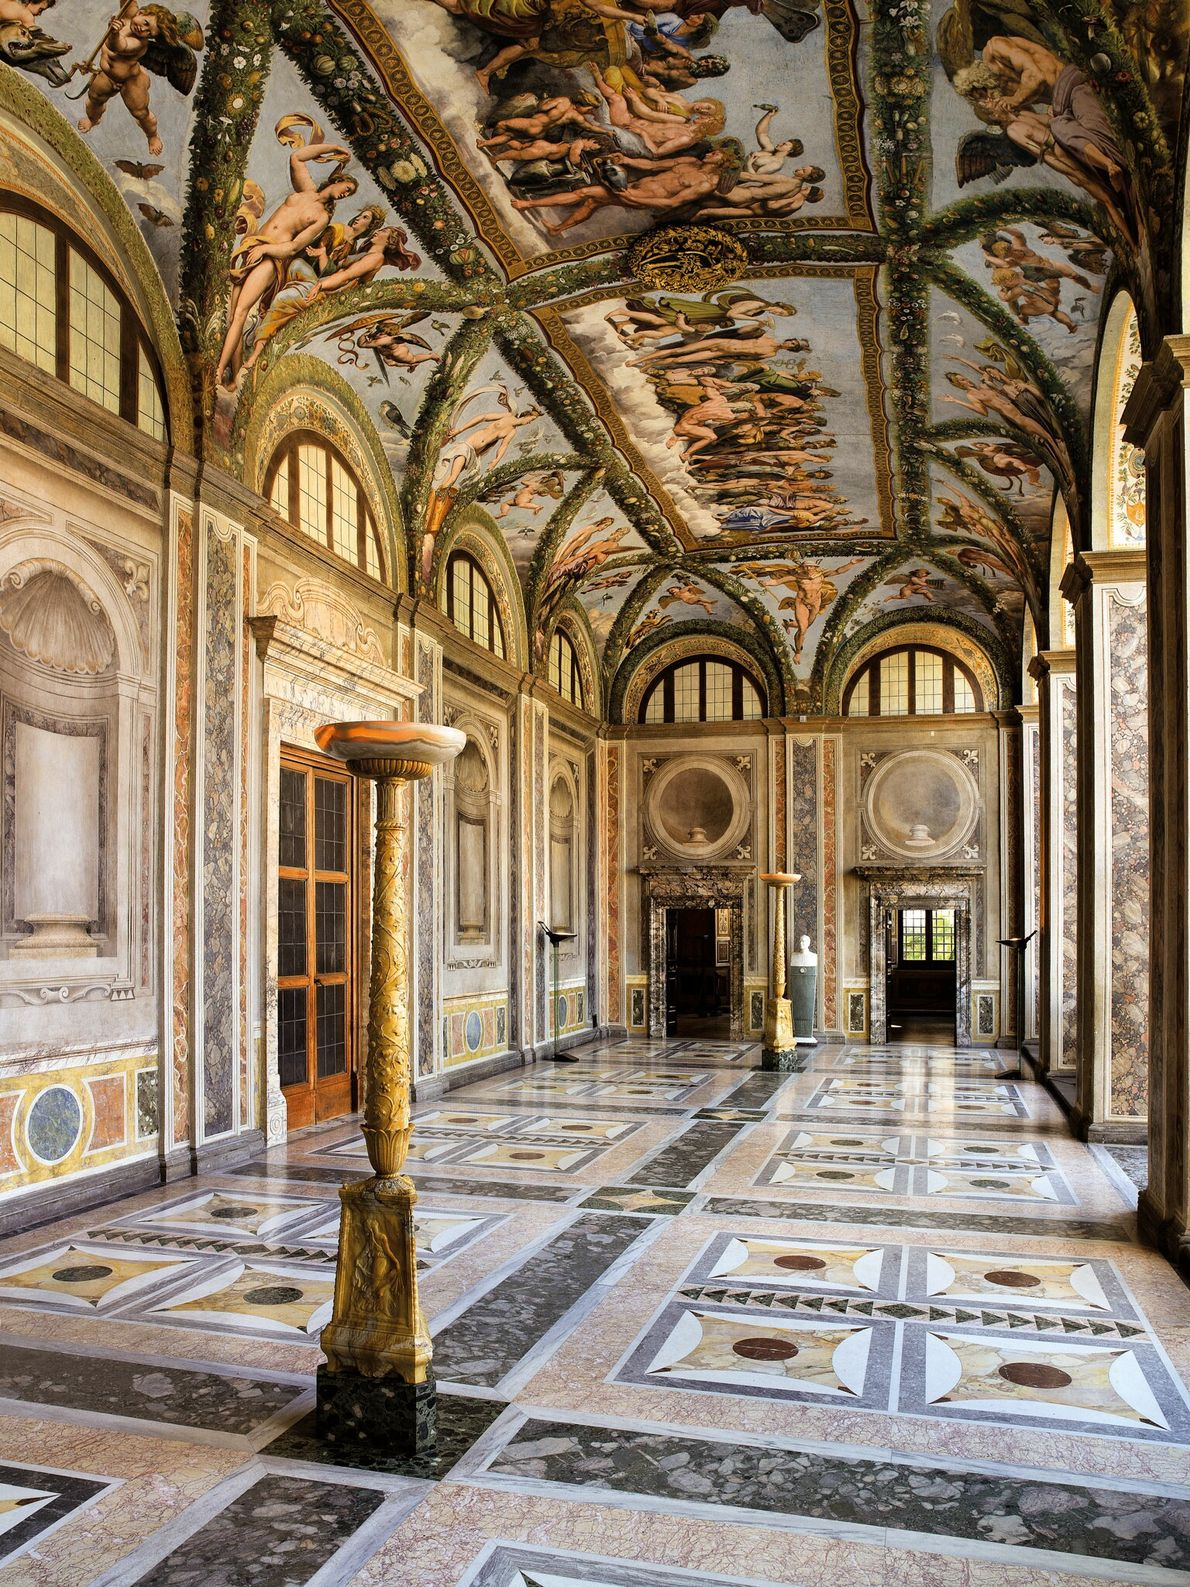 Cardinal Alessandro Farnese aquired the Chigi Family mansion in 1580 and gave the villa its current ...